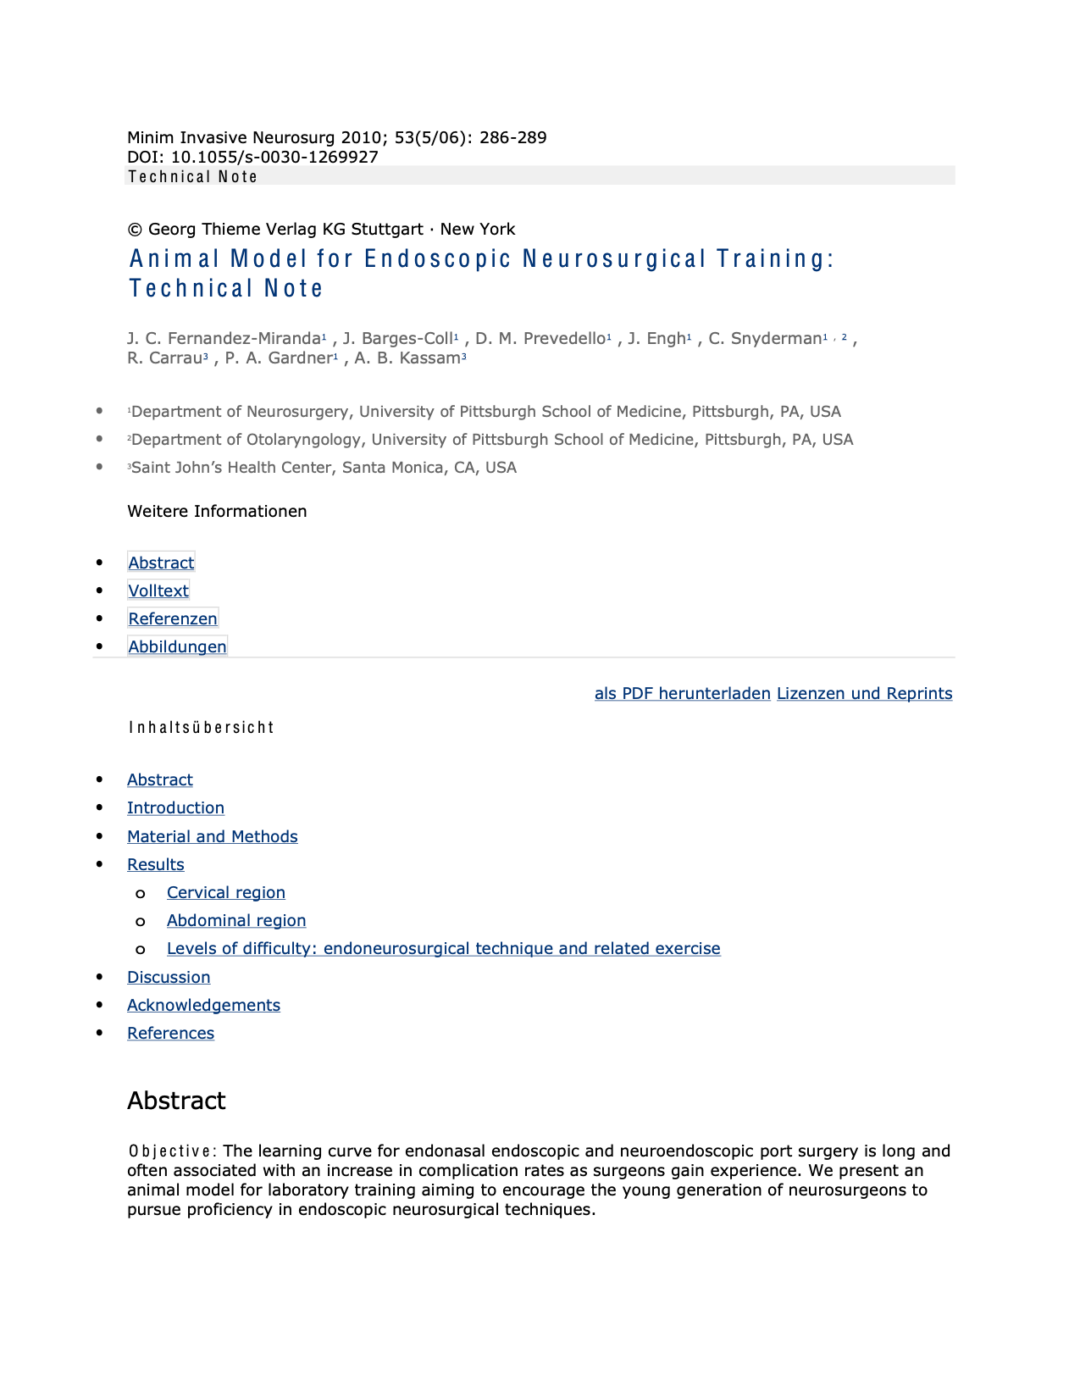 Animal Model for Endoscopic Neurosurgical Training Technical Note